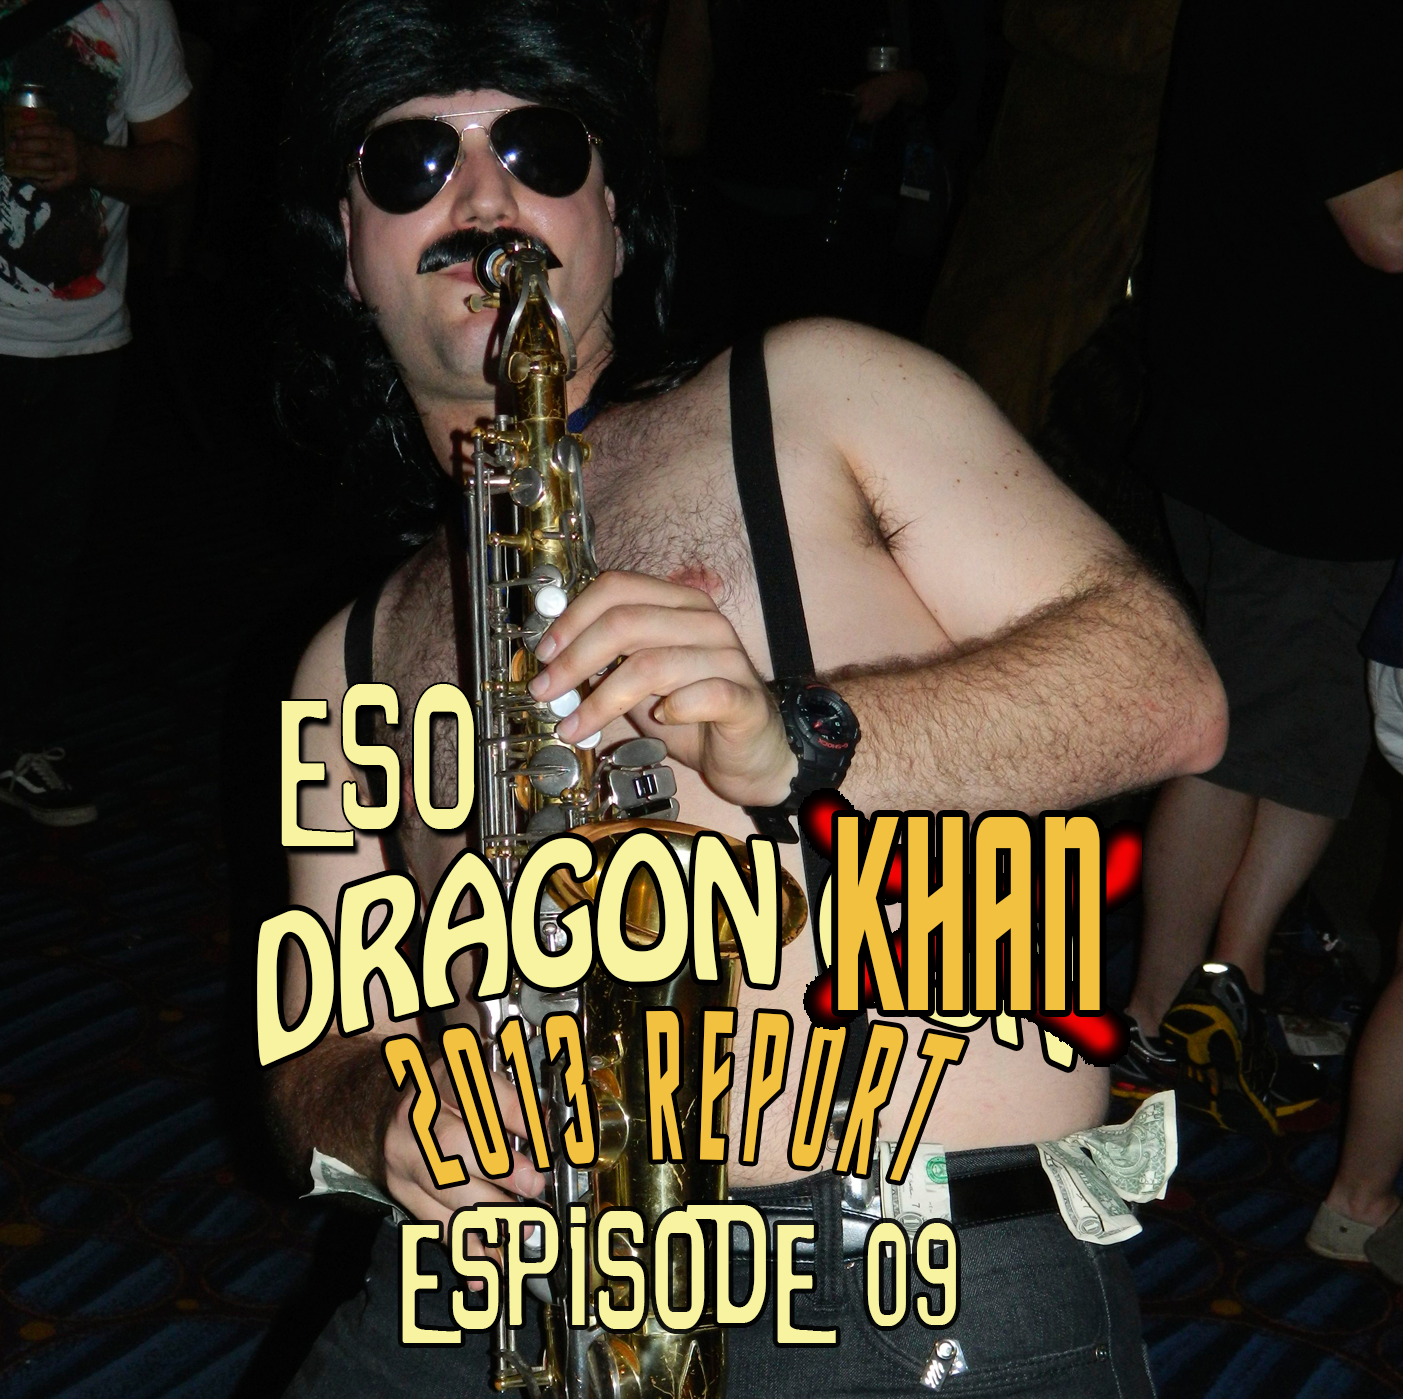 ESO Dragon Con 2013 Khan Report Ep 9